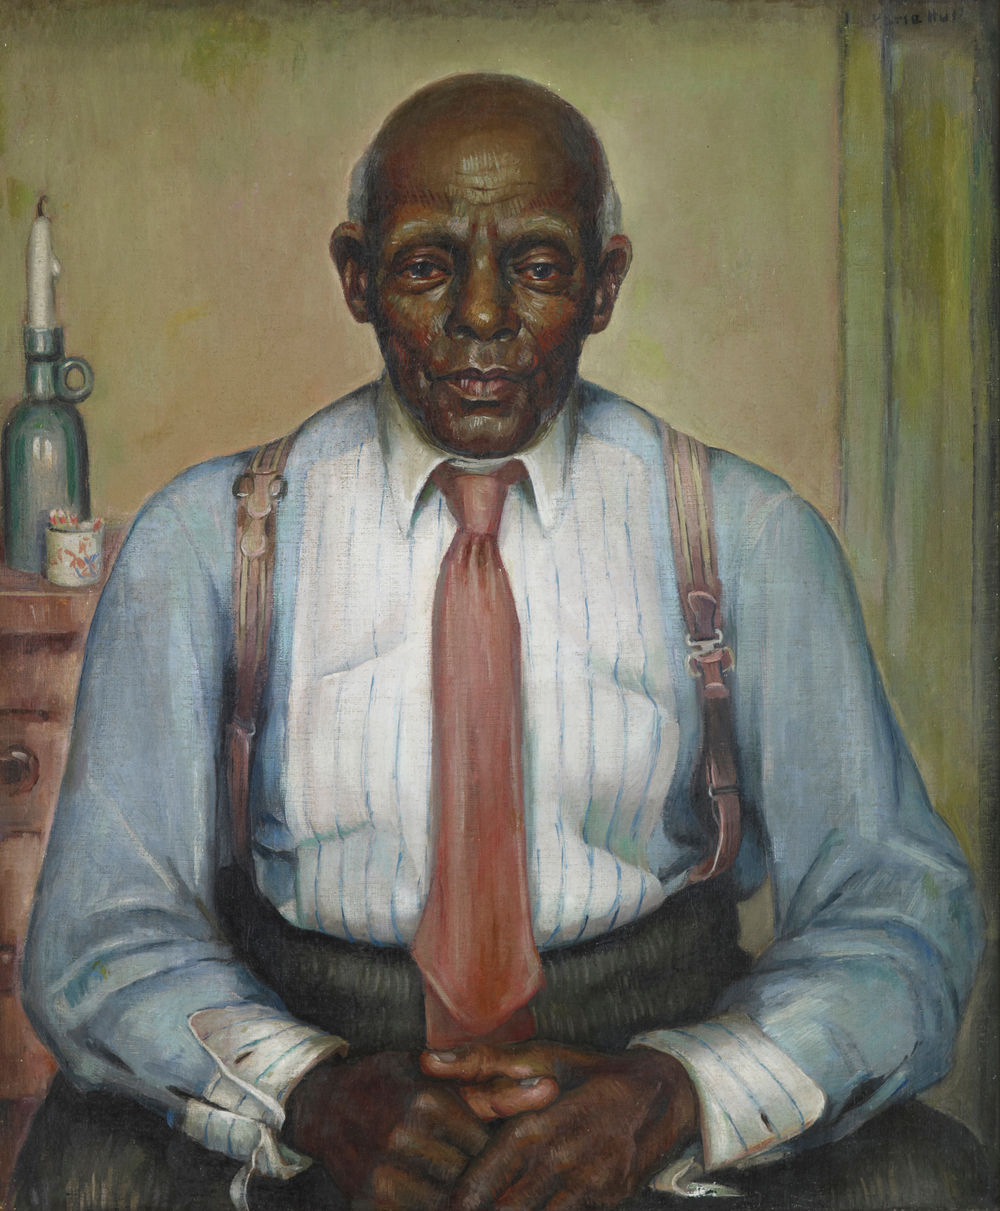 Marie Hull (1890-1980), An American Citizen, 1936. oil on linen. Collection of Mississippi Museum of Art. Gift of Dr. Blair E. Batson, Jackson, MS.